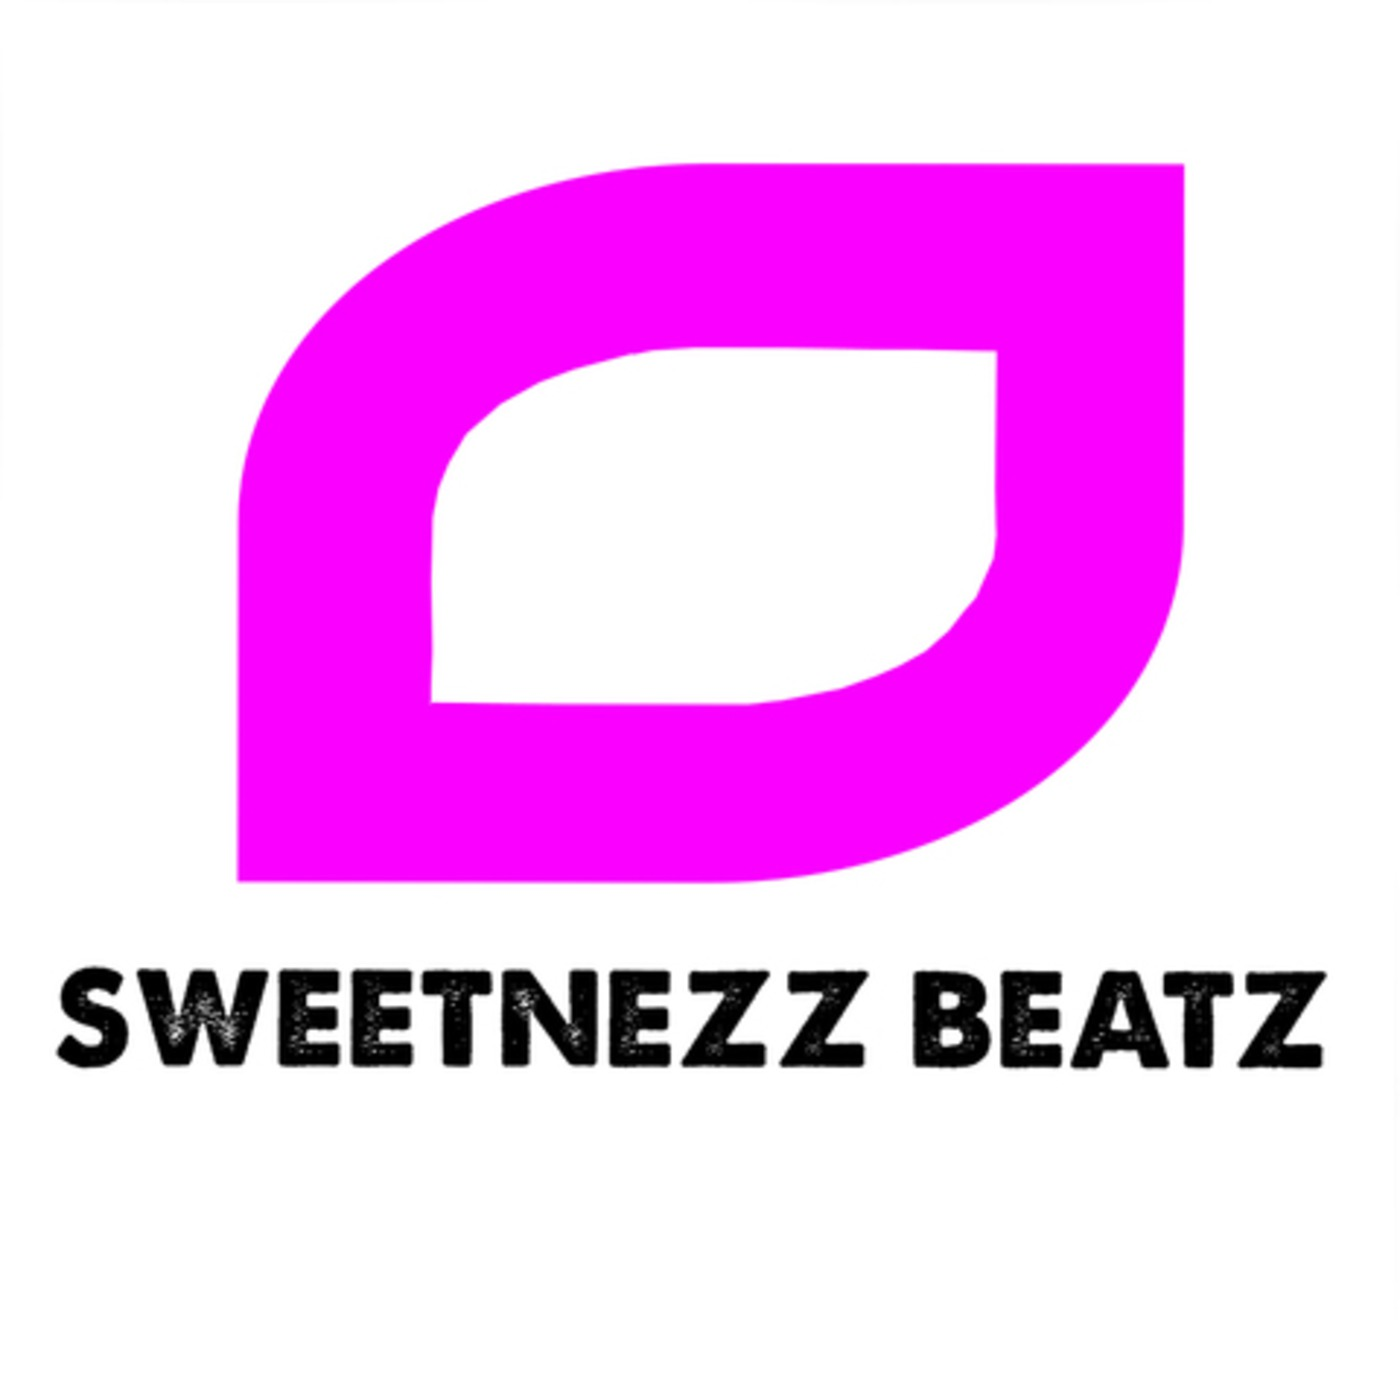 Soundz of Sweetnezz